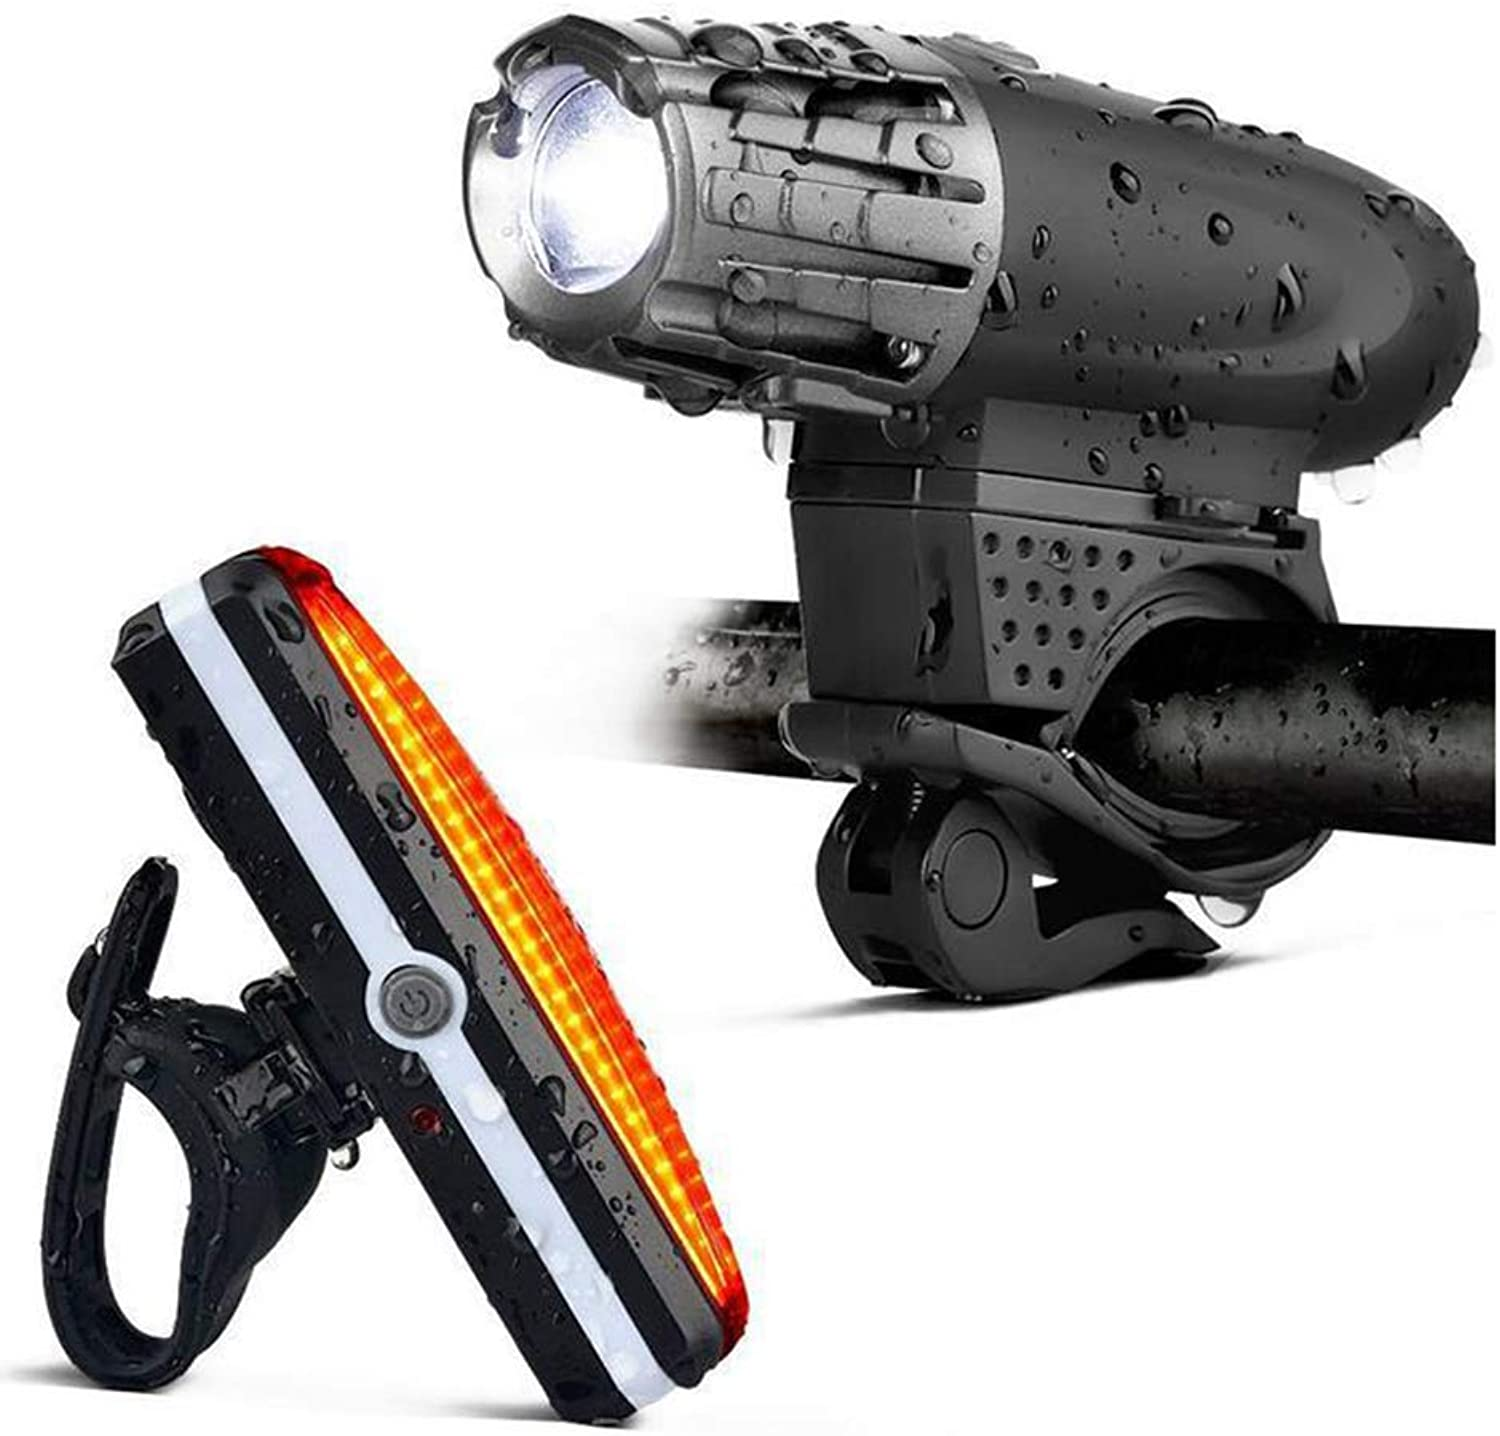 LED Sport Bike Light Kit, Waterproof 300 Lumen Bicycle Headlight, 4 Light Modes, Rechargeable Front and Rear Bicycle Light Set